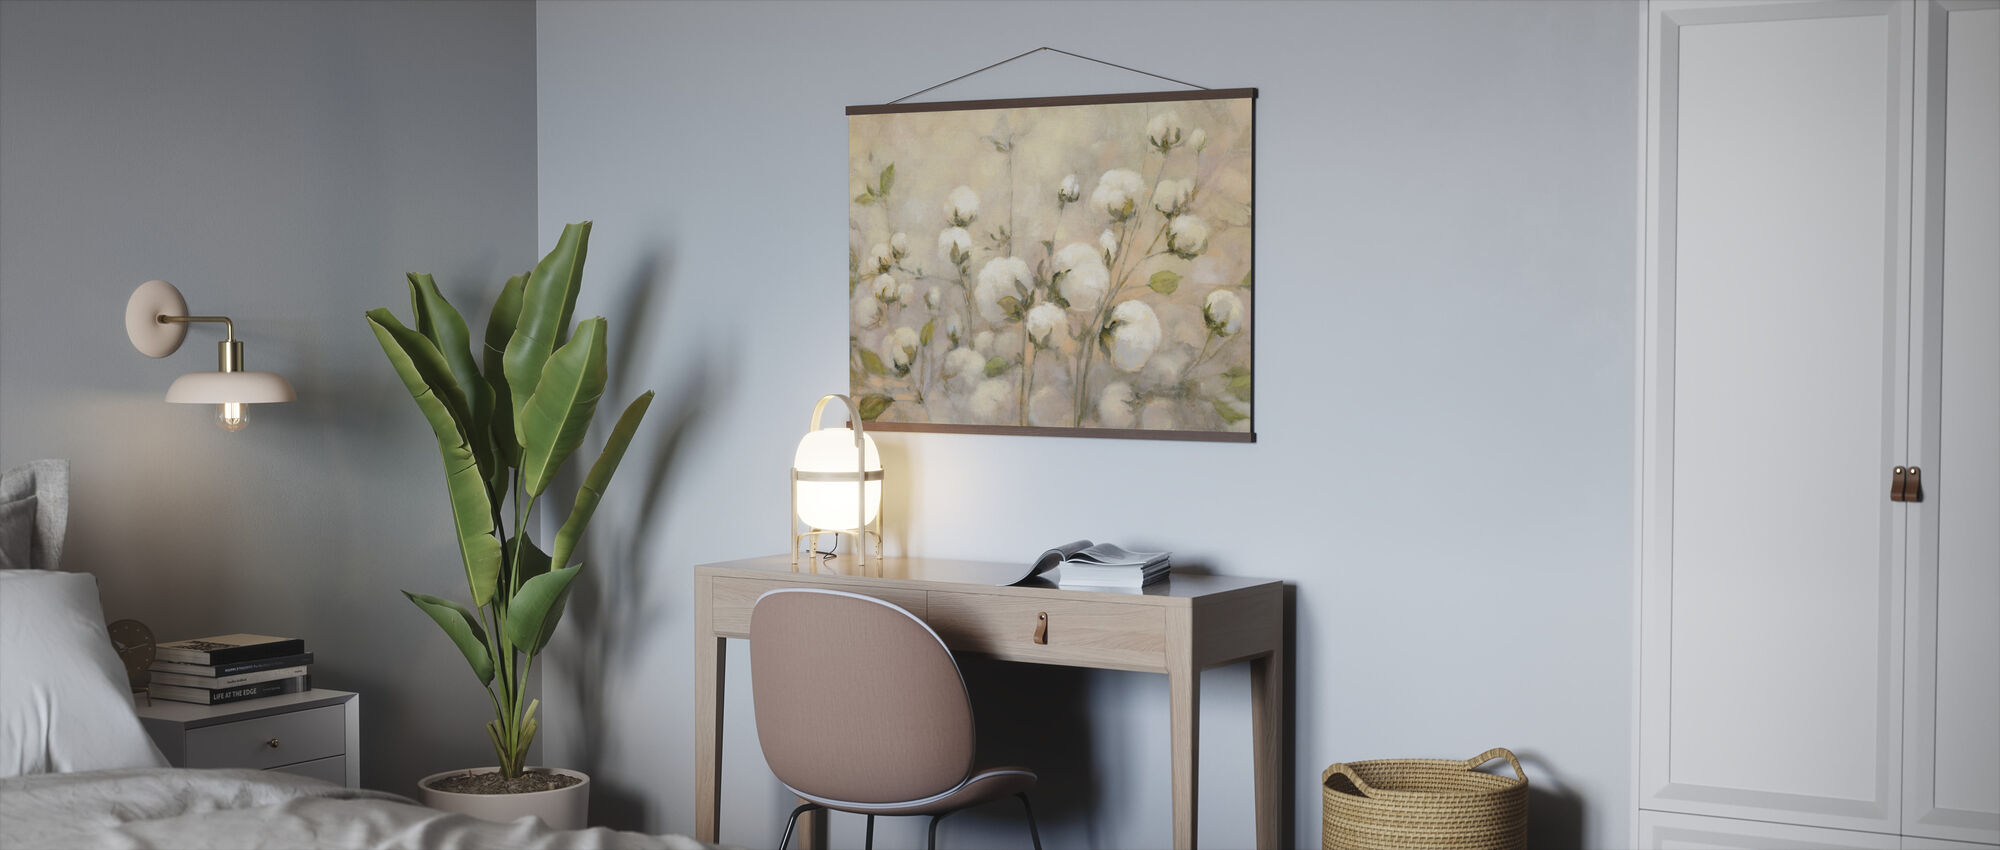 Cotton Field - Poster - Office